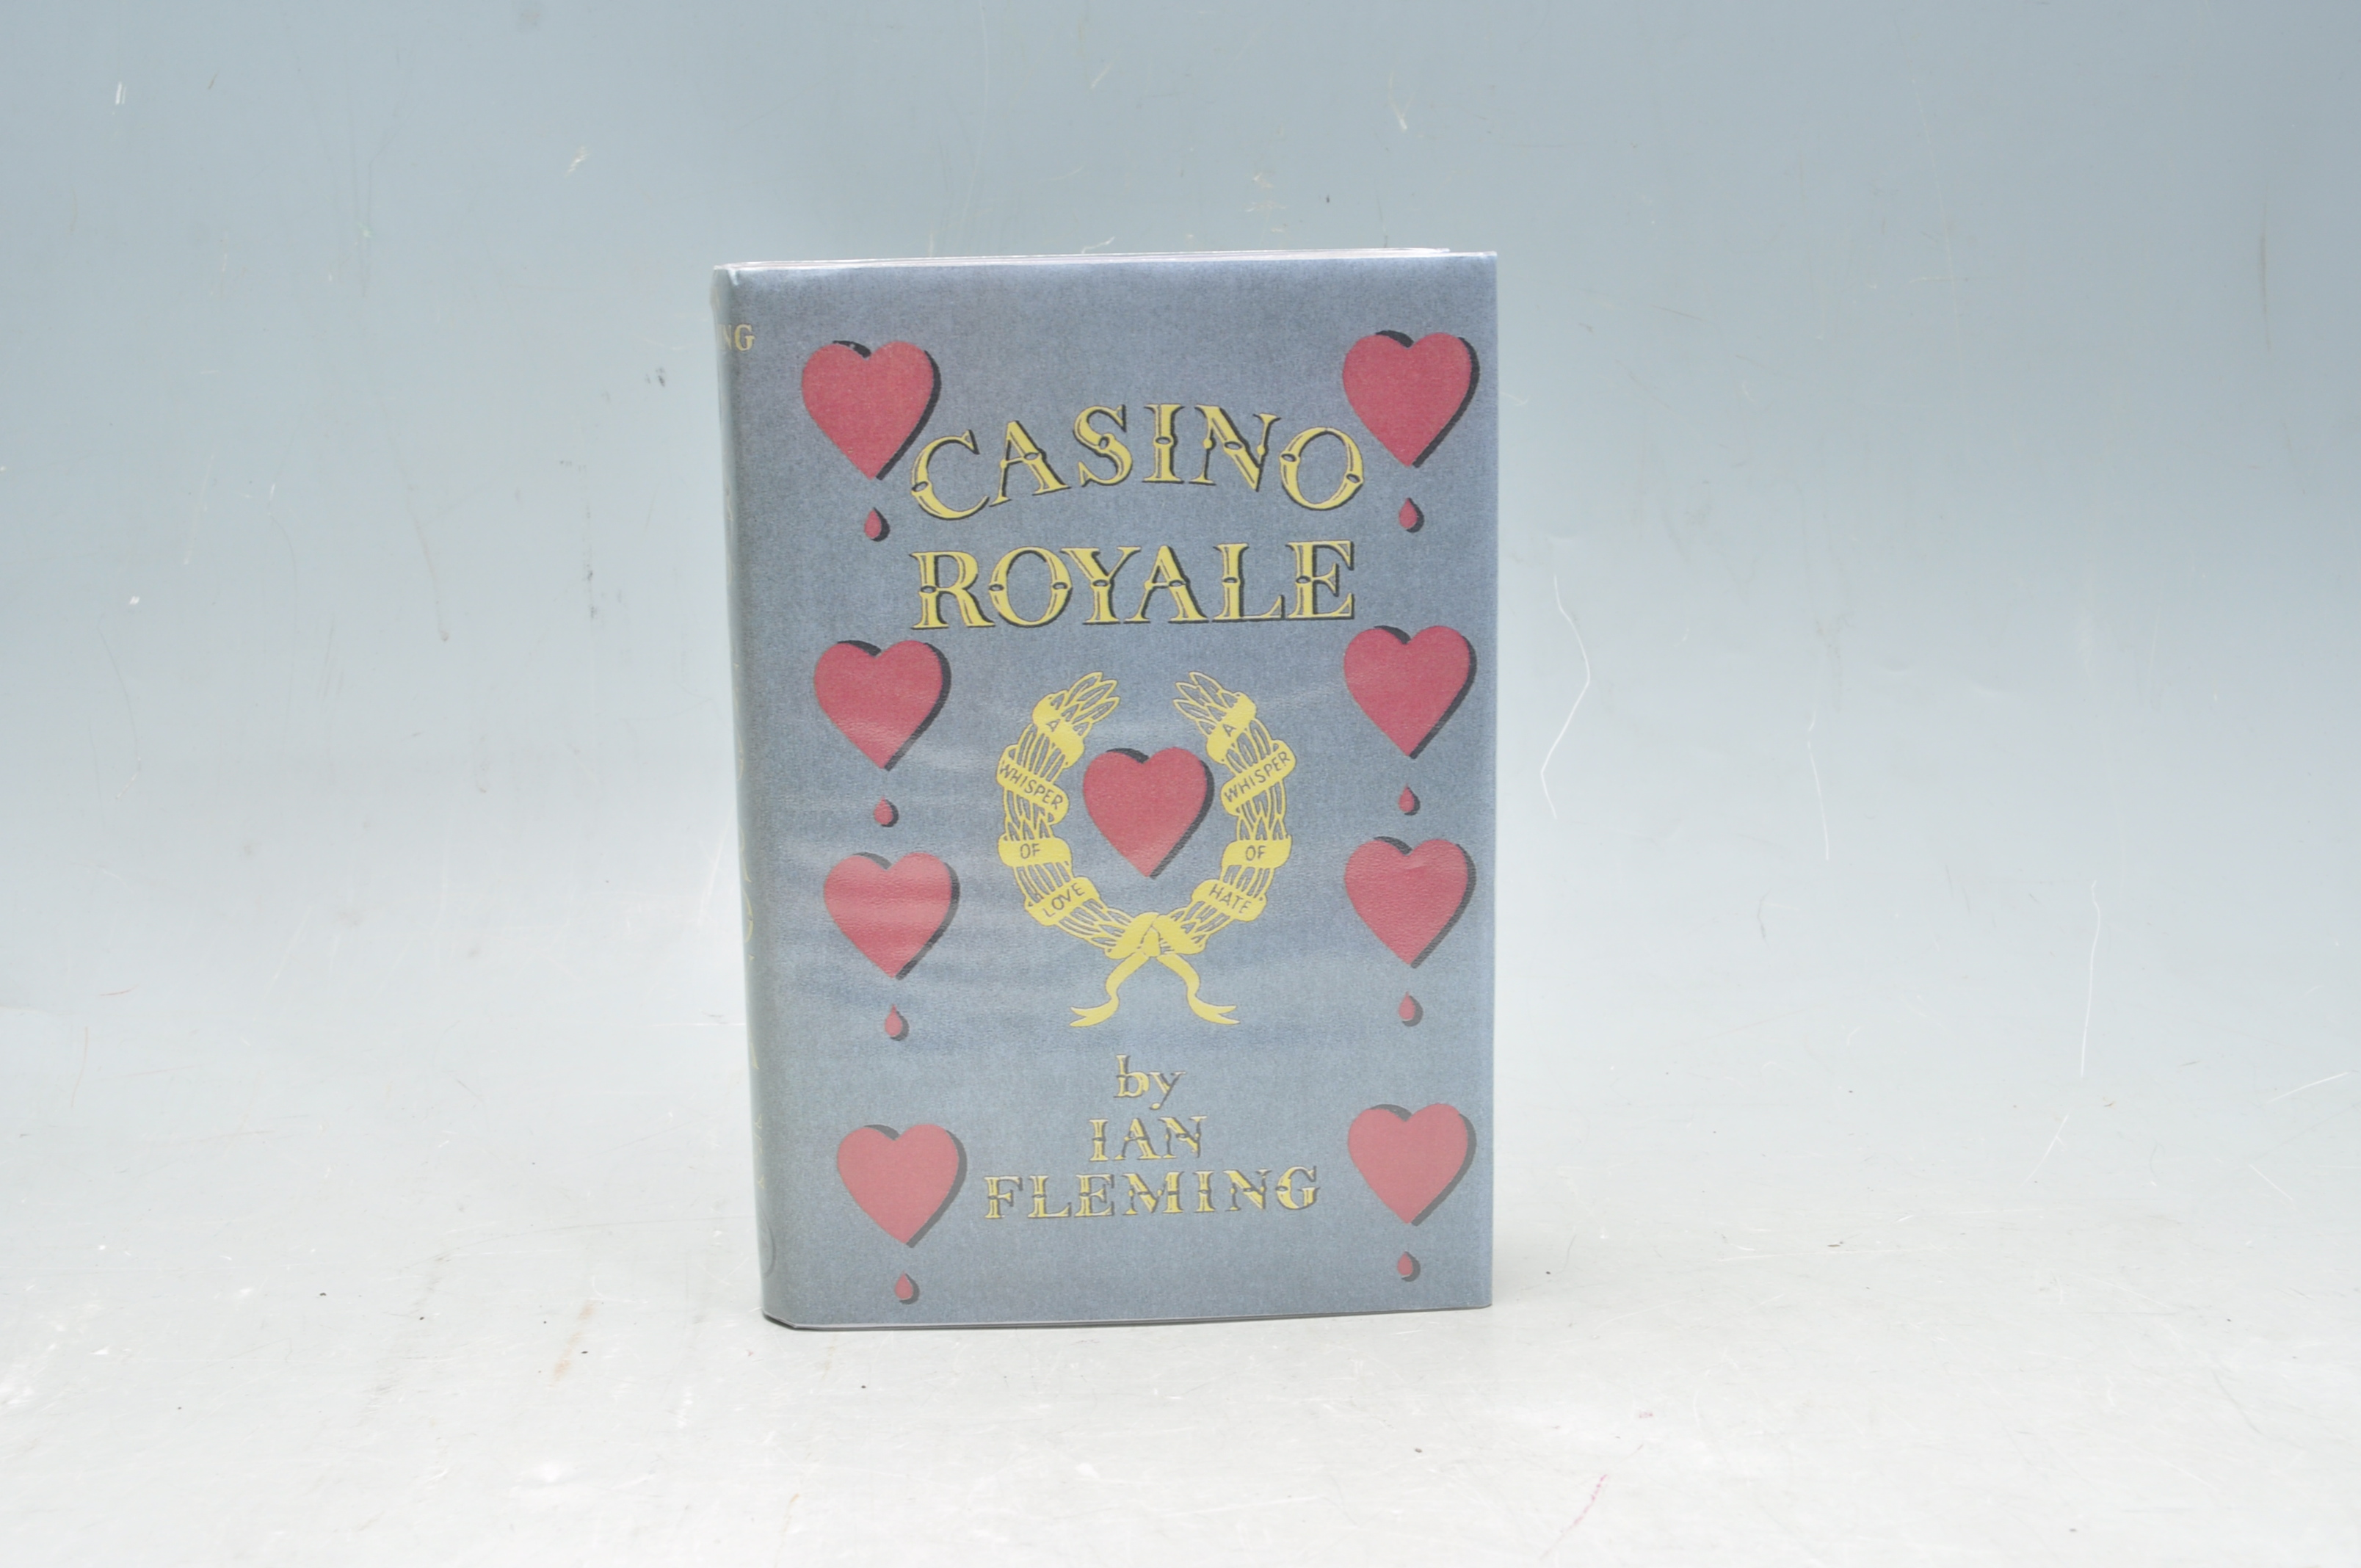 FIRST EDITION CASINO ROYALE BY IAN FLEMING